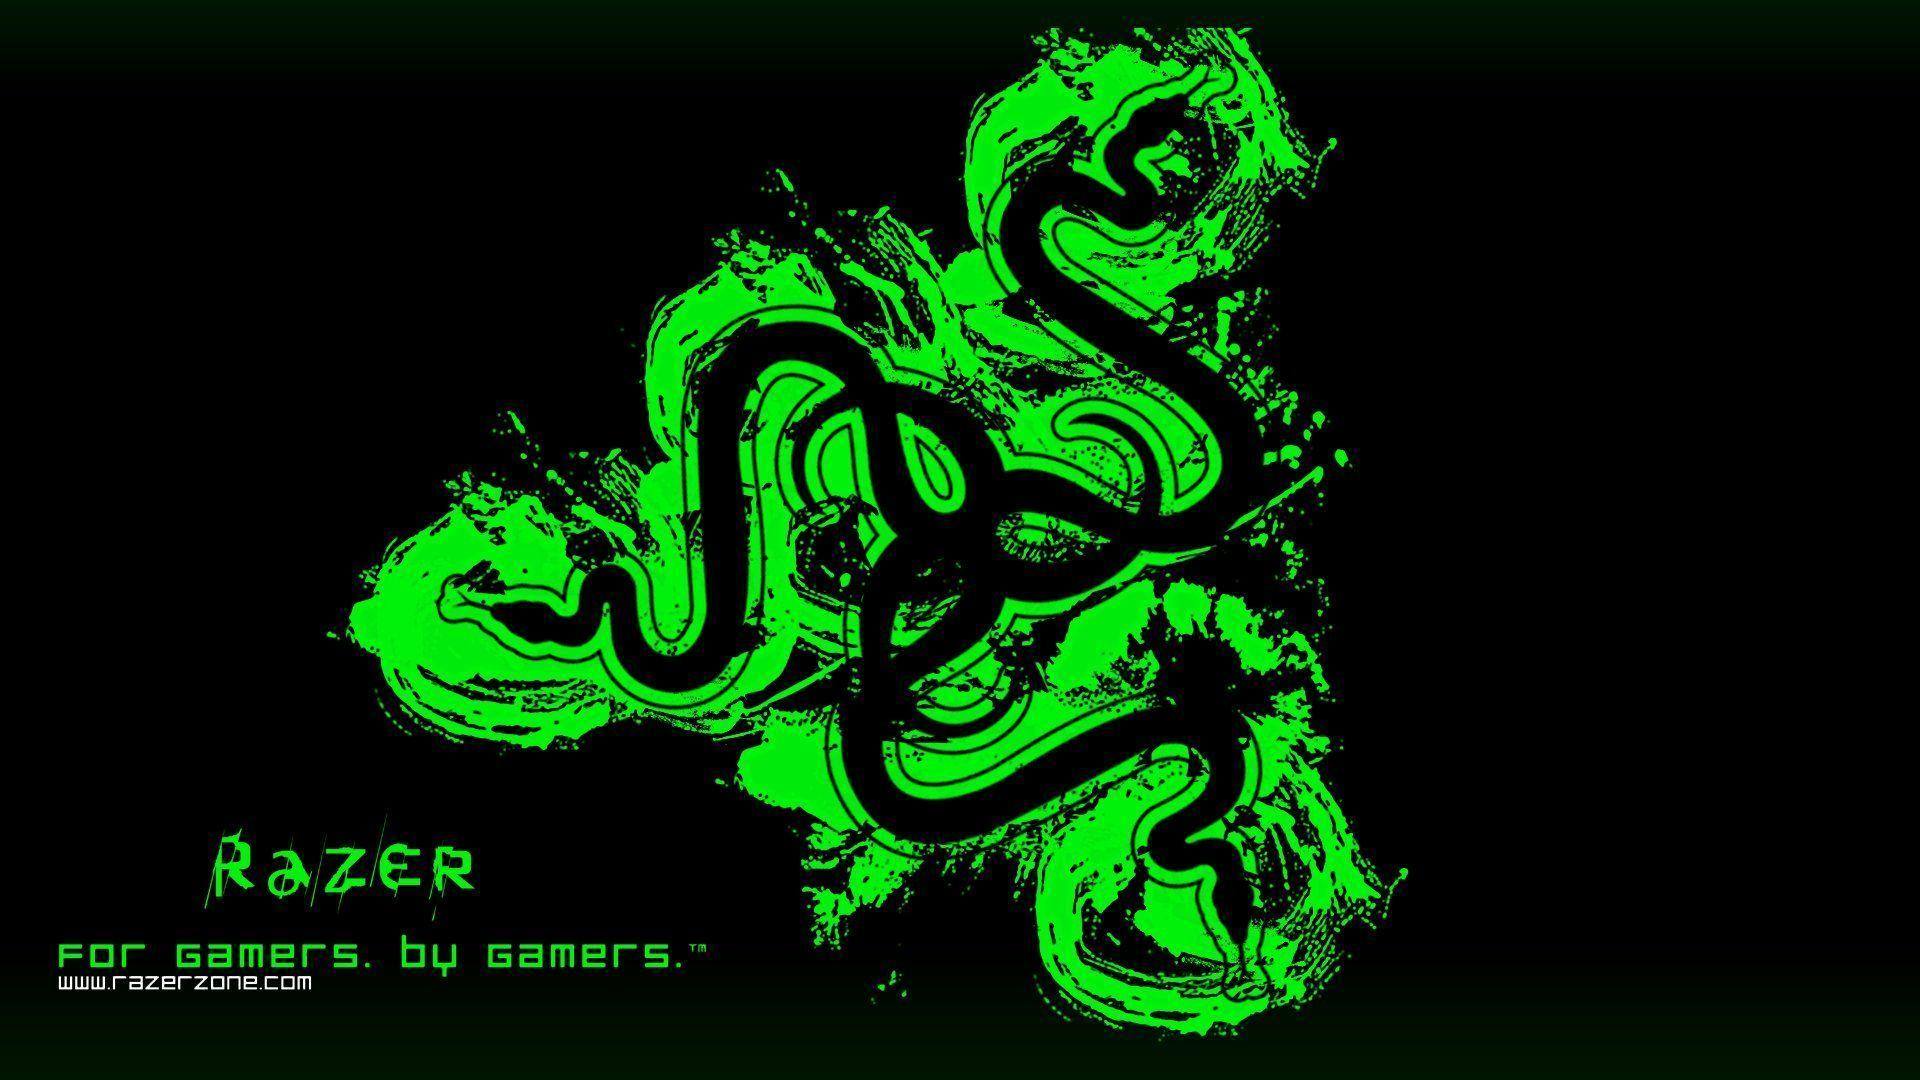 RAZER GAMING computer game